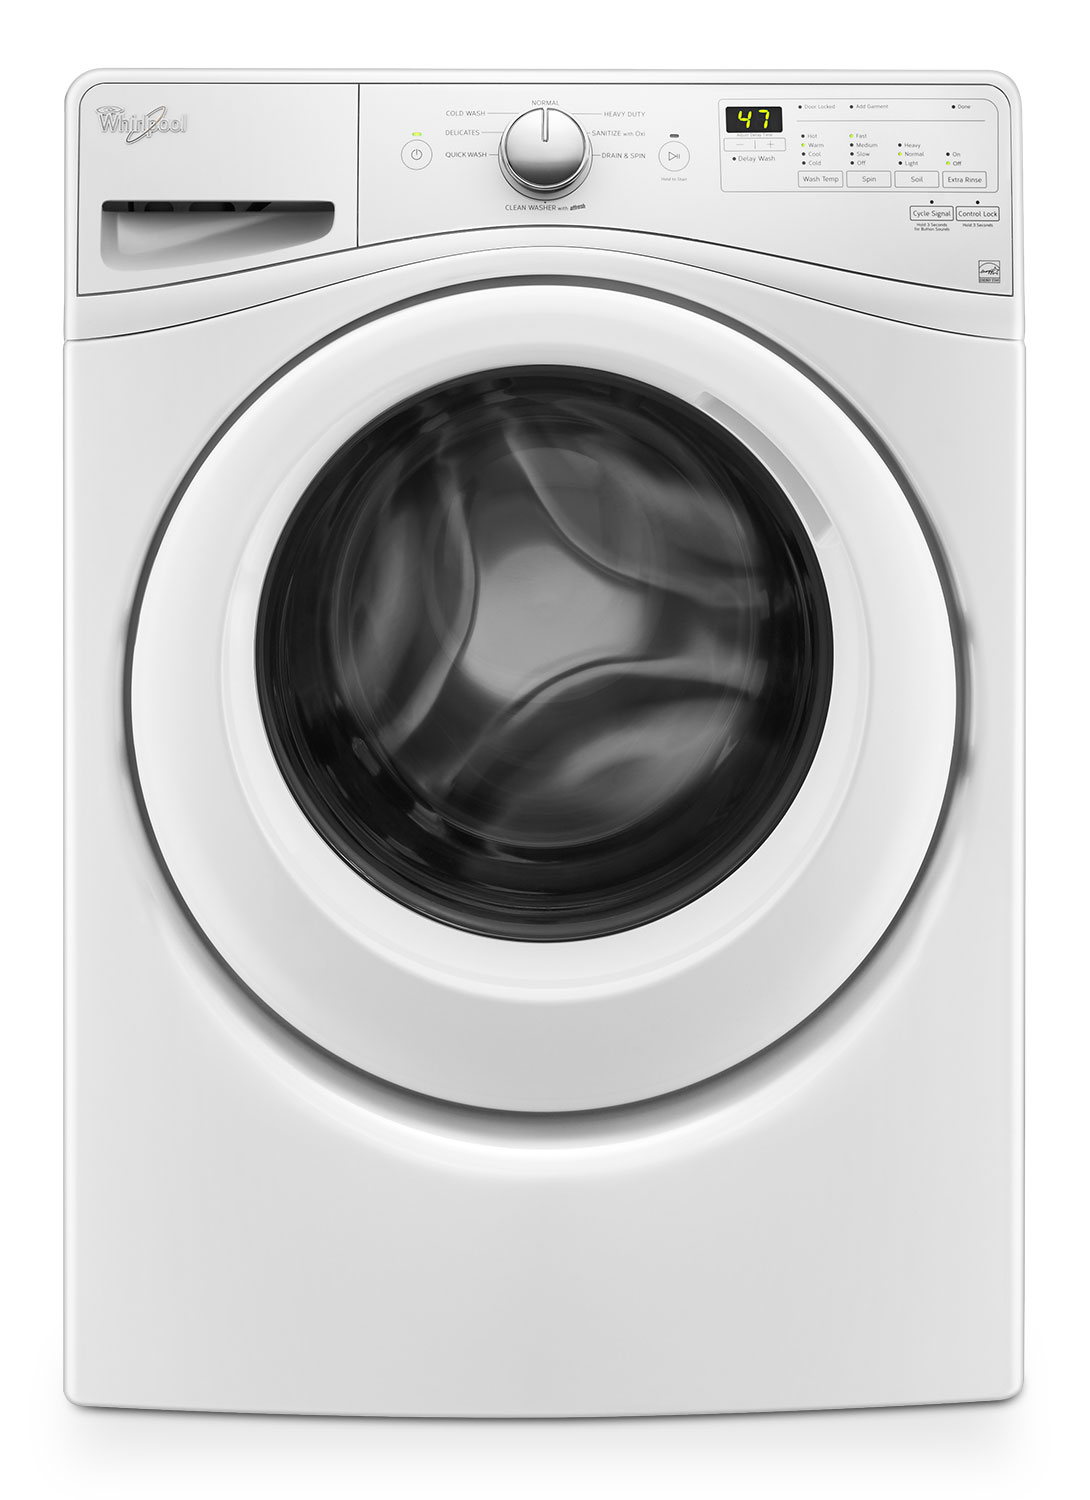 Washers and Dryers - Whirlpool 5.2 Cu. Ft. Front-Load Washer – WFW75HEFW